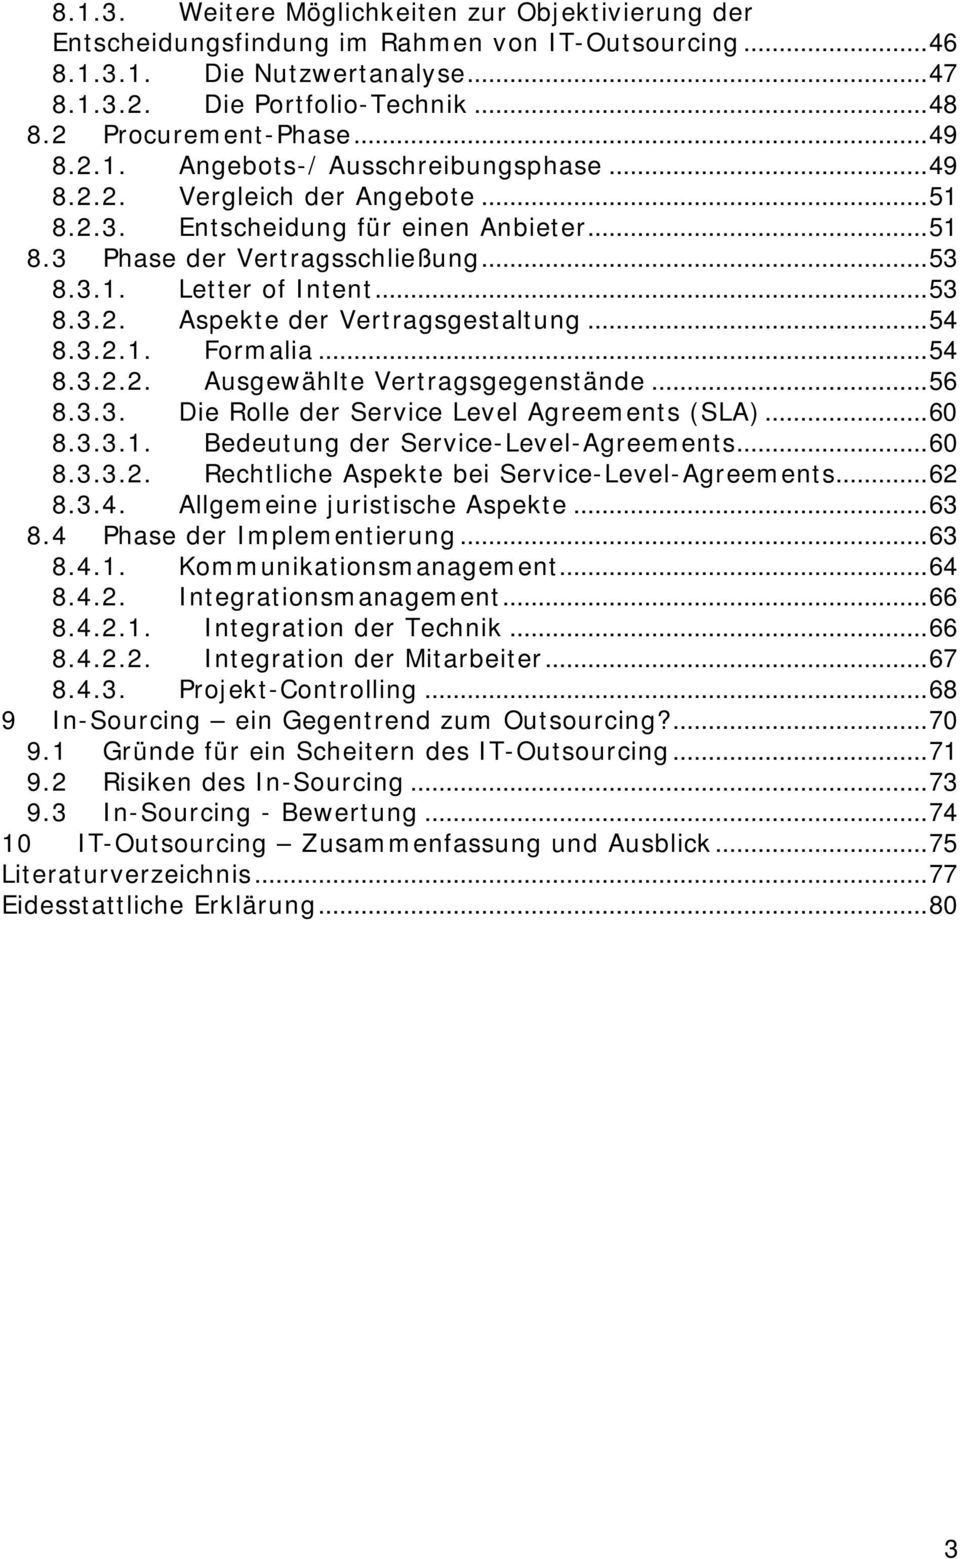 ..54 8.3.2.1. Formalia...54 8.3.2.2. Ausgewählte Vertragsgegenstände...56 8.3.3. Die Rolle der Service Level Agreements (SLA)...60 8.3.3.1. Bedeutung der Service-Level-Agreements...60 8.3.3.2. Rechtliche Aspekte bei Service-Level-Agreements.